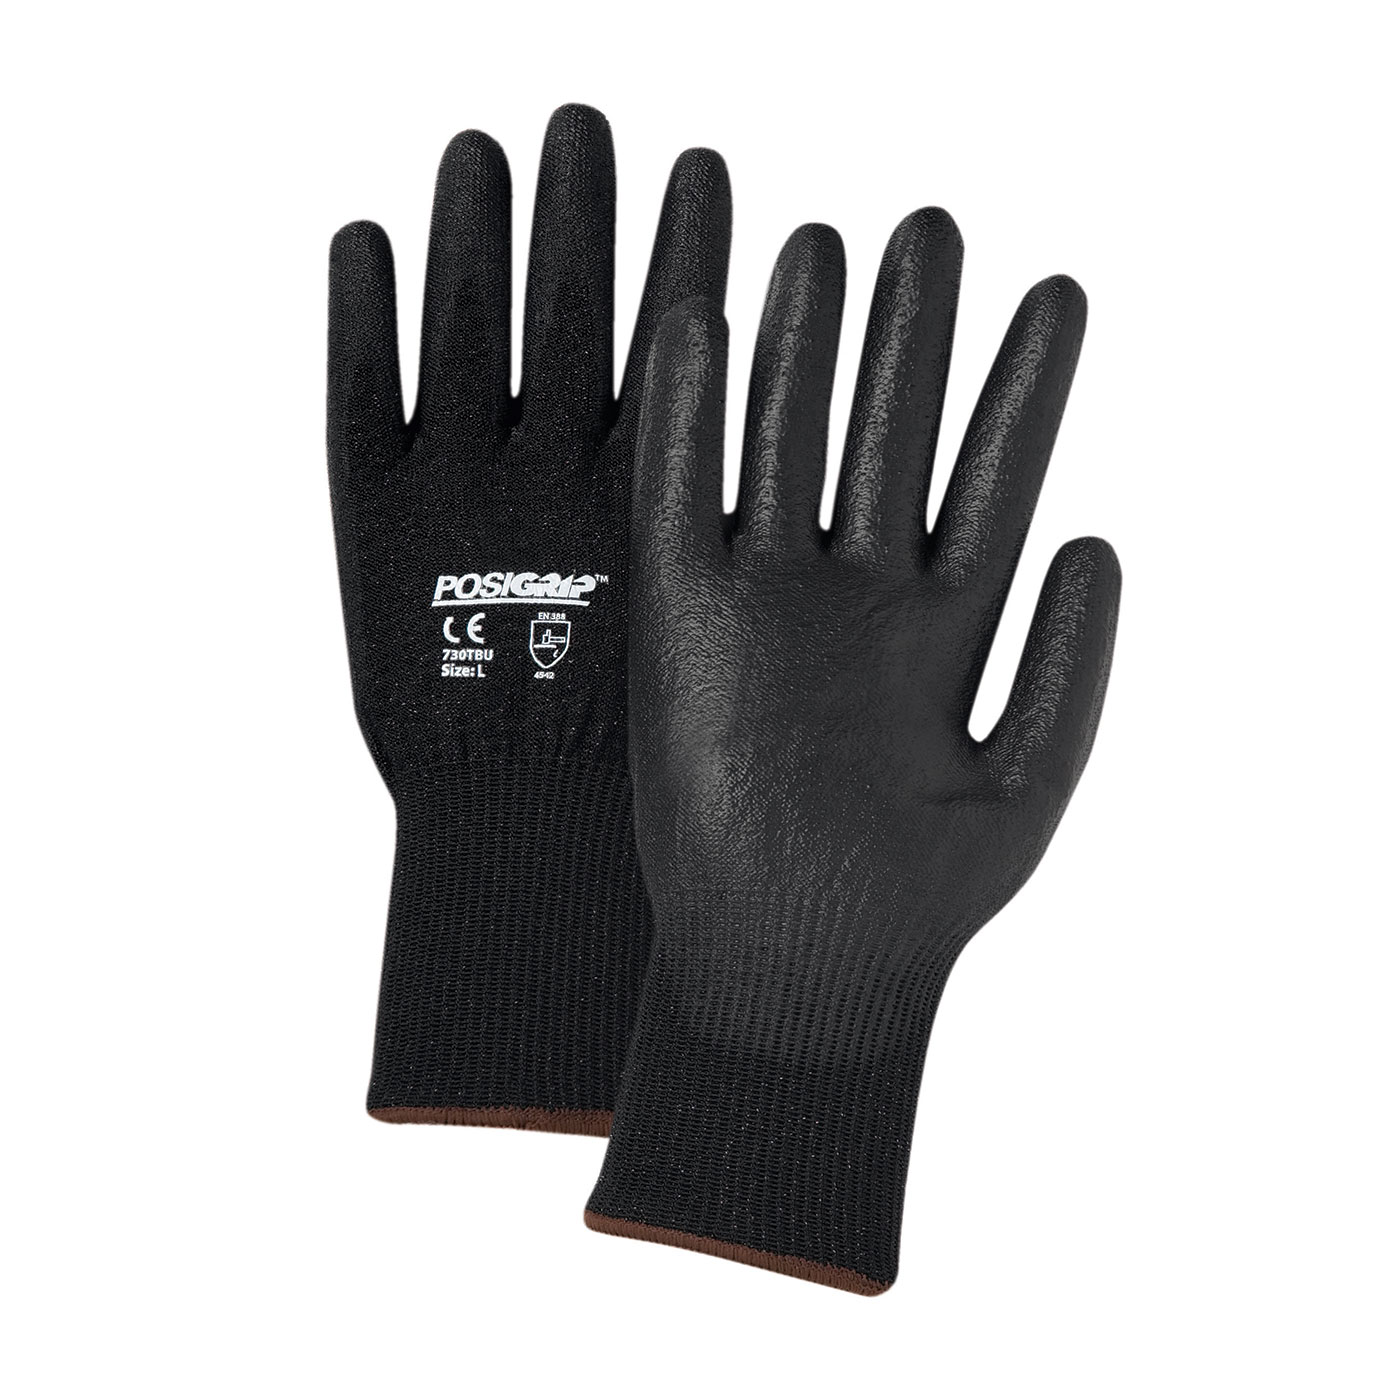 Seamless Knit HPPE Blended Glove with Polyurethane Coated Smooth Grip on Palm & Fingers, Black, L